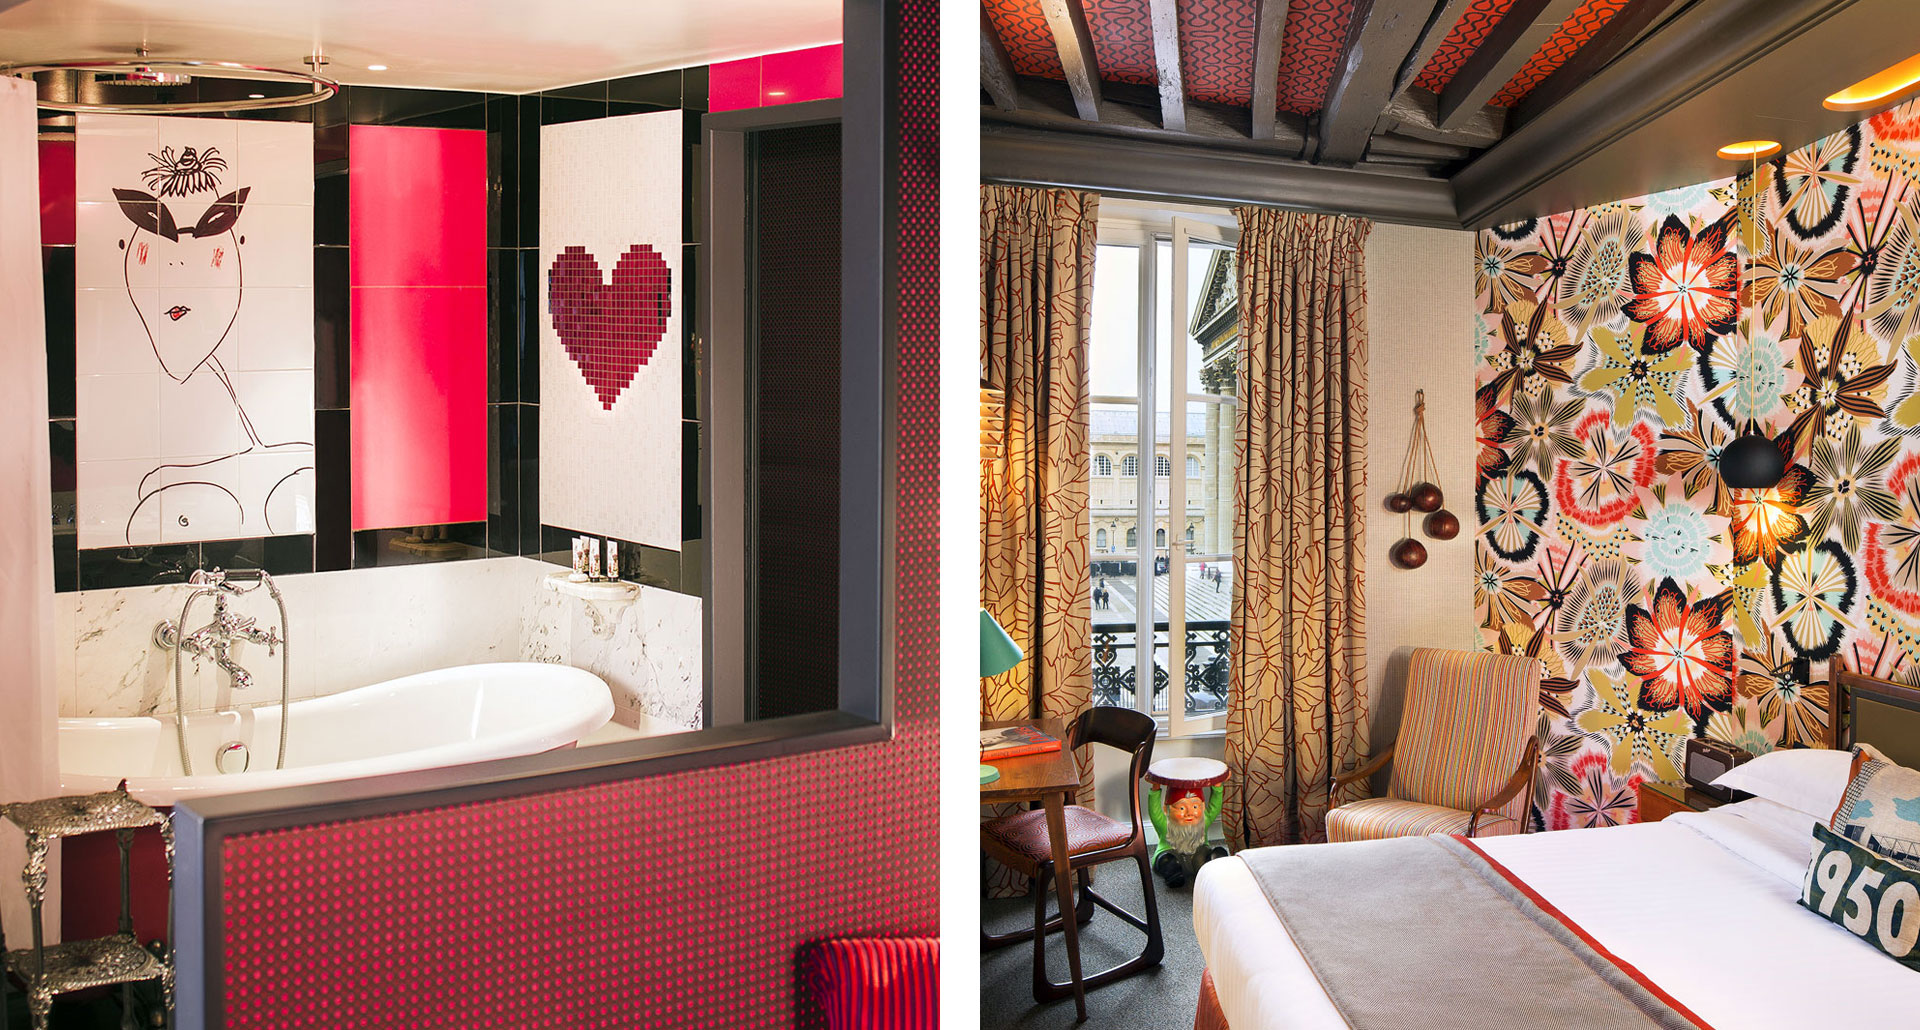 Le Dames du Pantheon - boutique hotel in Paris